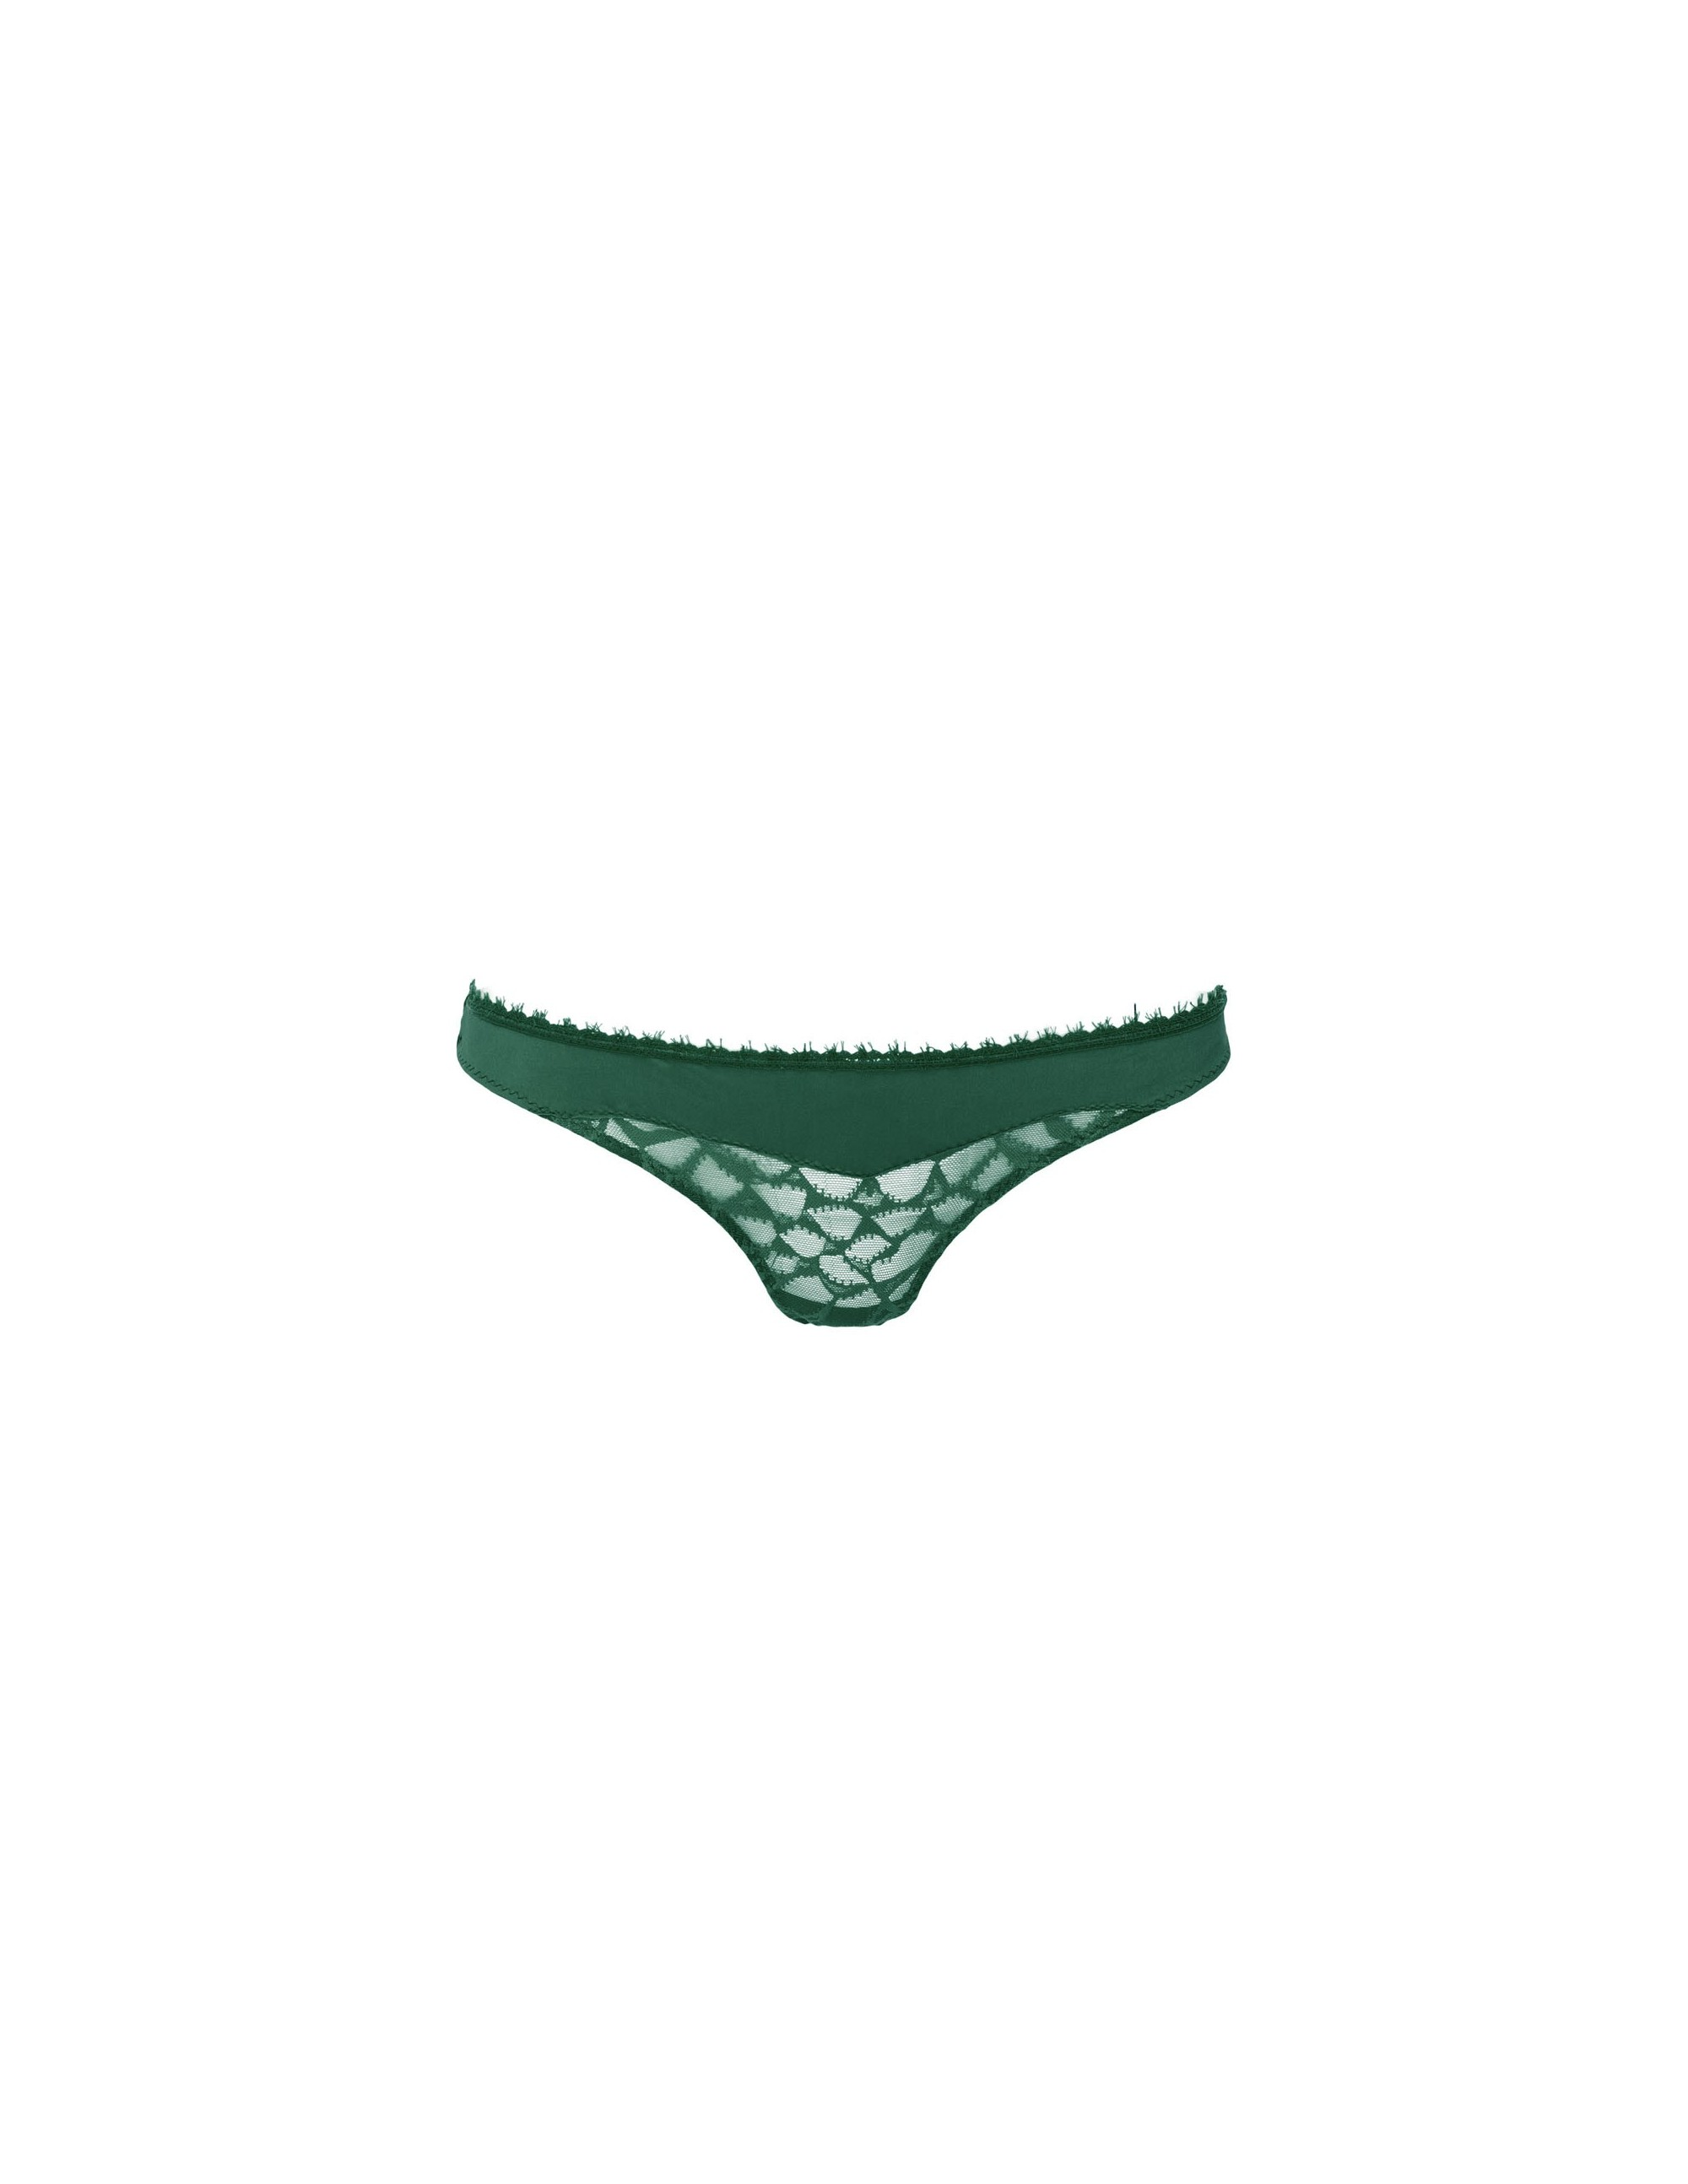 TULIP Panties in french lace - FOREST - RESET PRIORITY